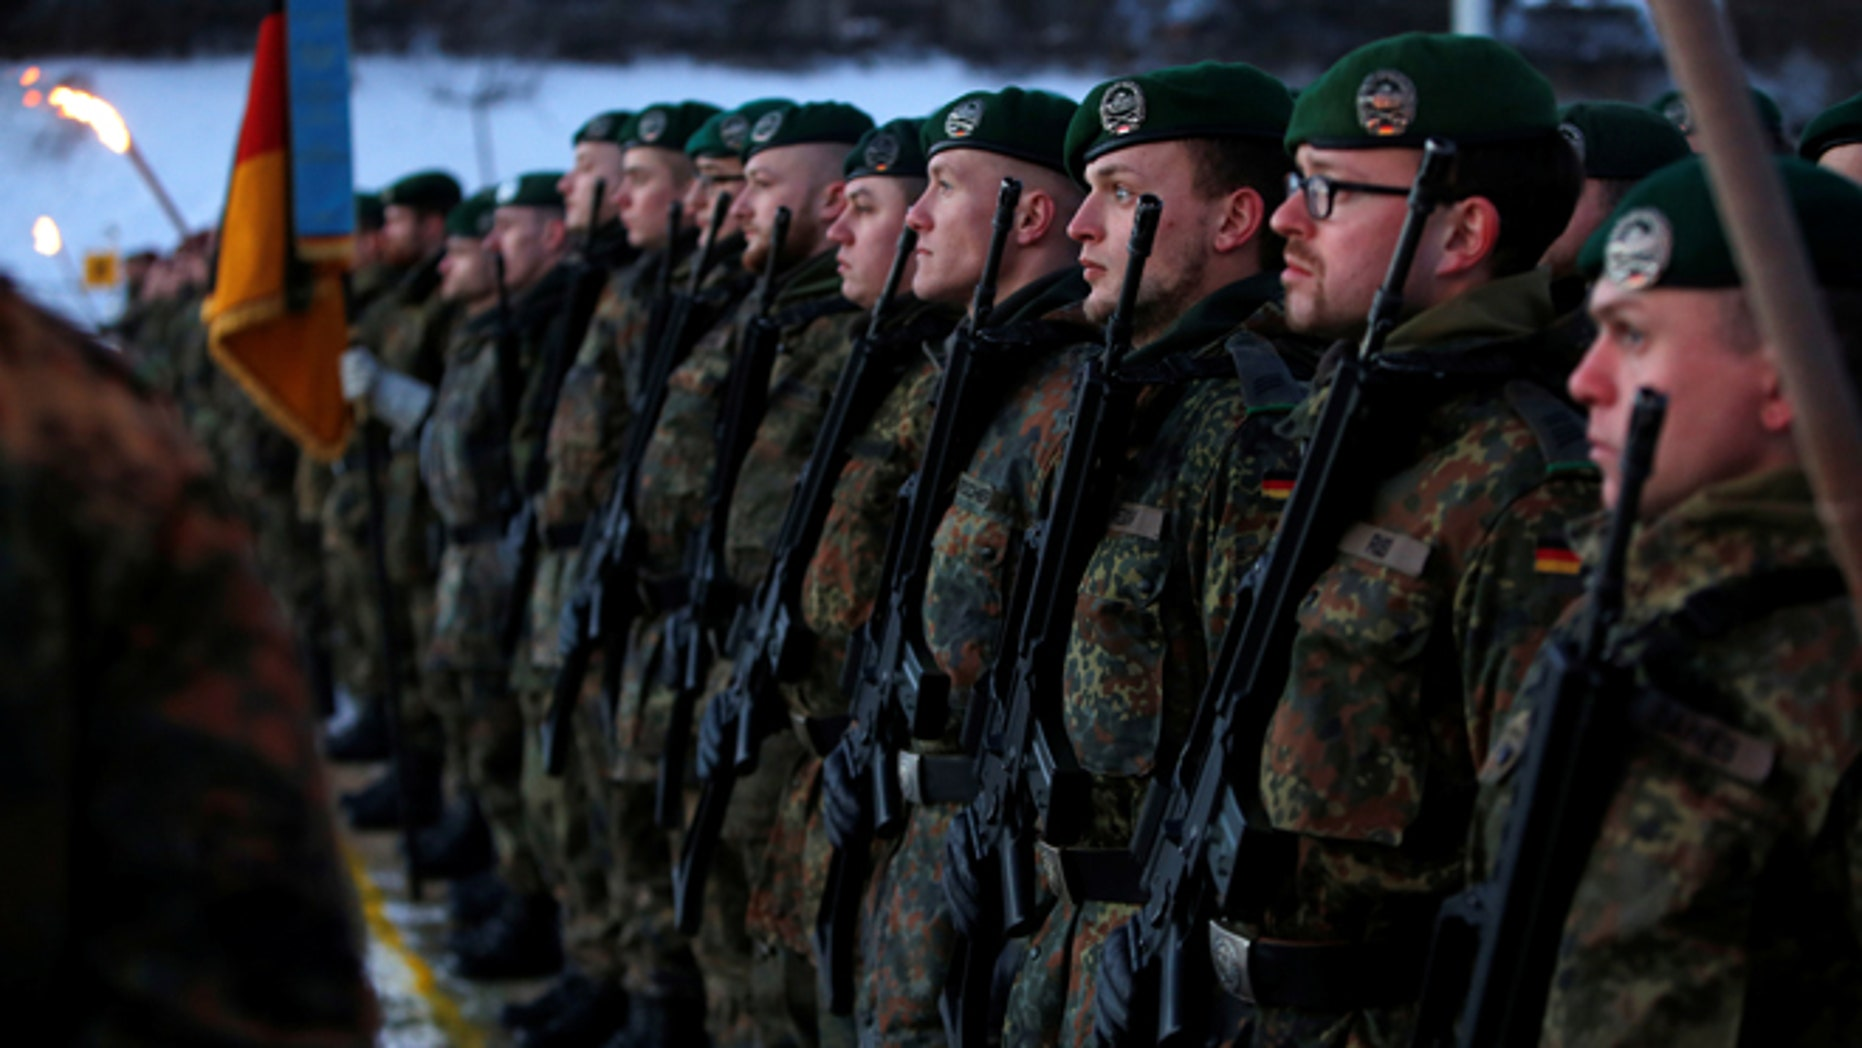 Soldiers of the German armed forces Bundeswehr take part in farewell ceremony for Panzergrenadierbataillon 122, deployment in Lithuania, in Oberviechtach, Germany January 19, 2017.  REUTERS/Michaela Rehle - RTSWFXO